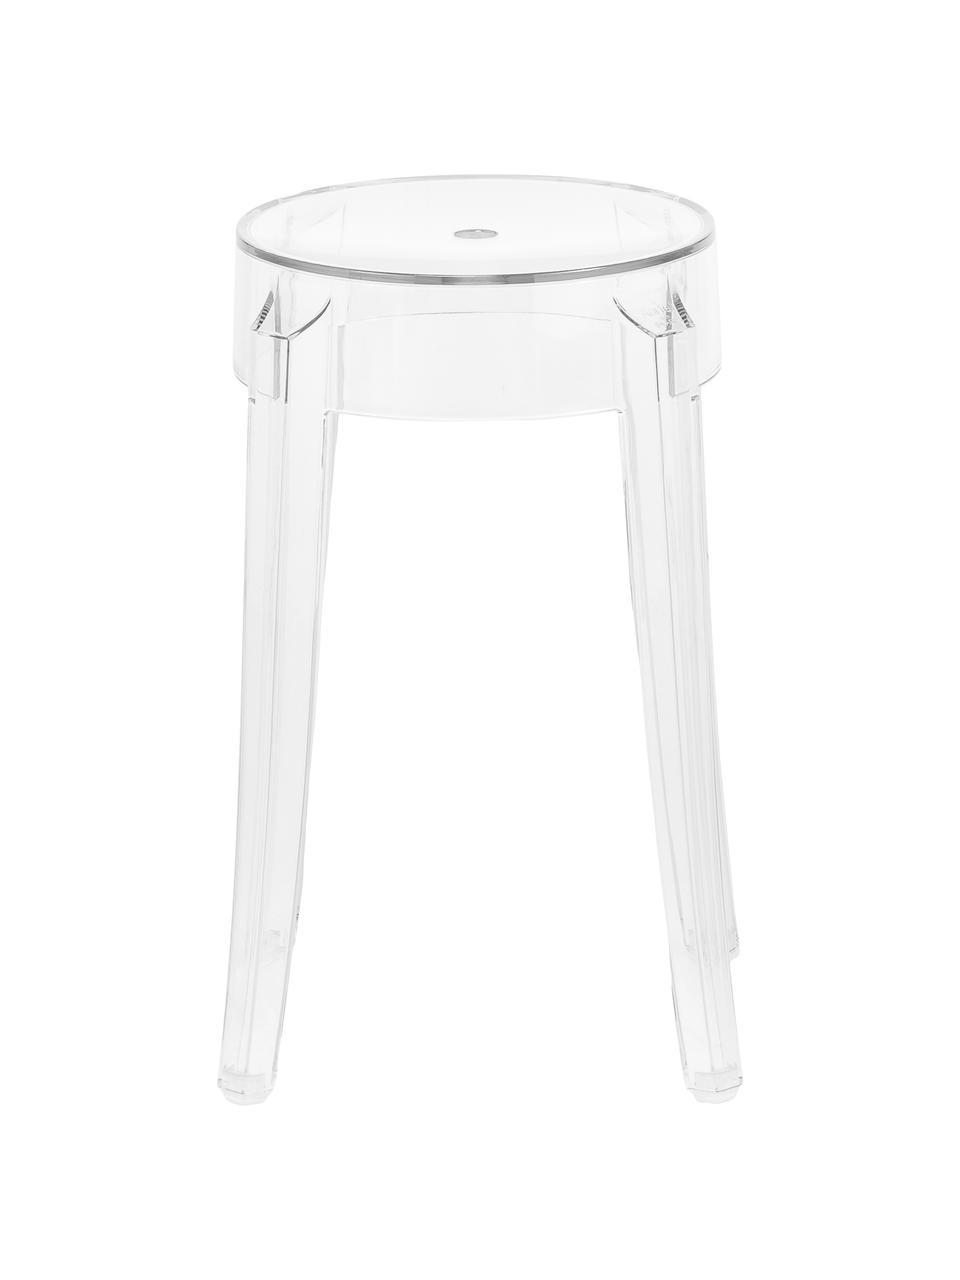 Tabouret/table d'appoint transparent Charles Ghost, Transparent